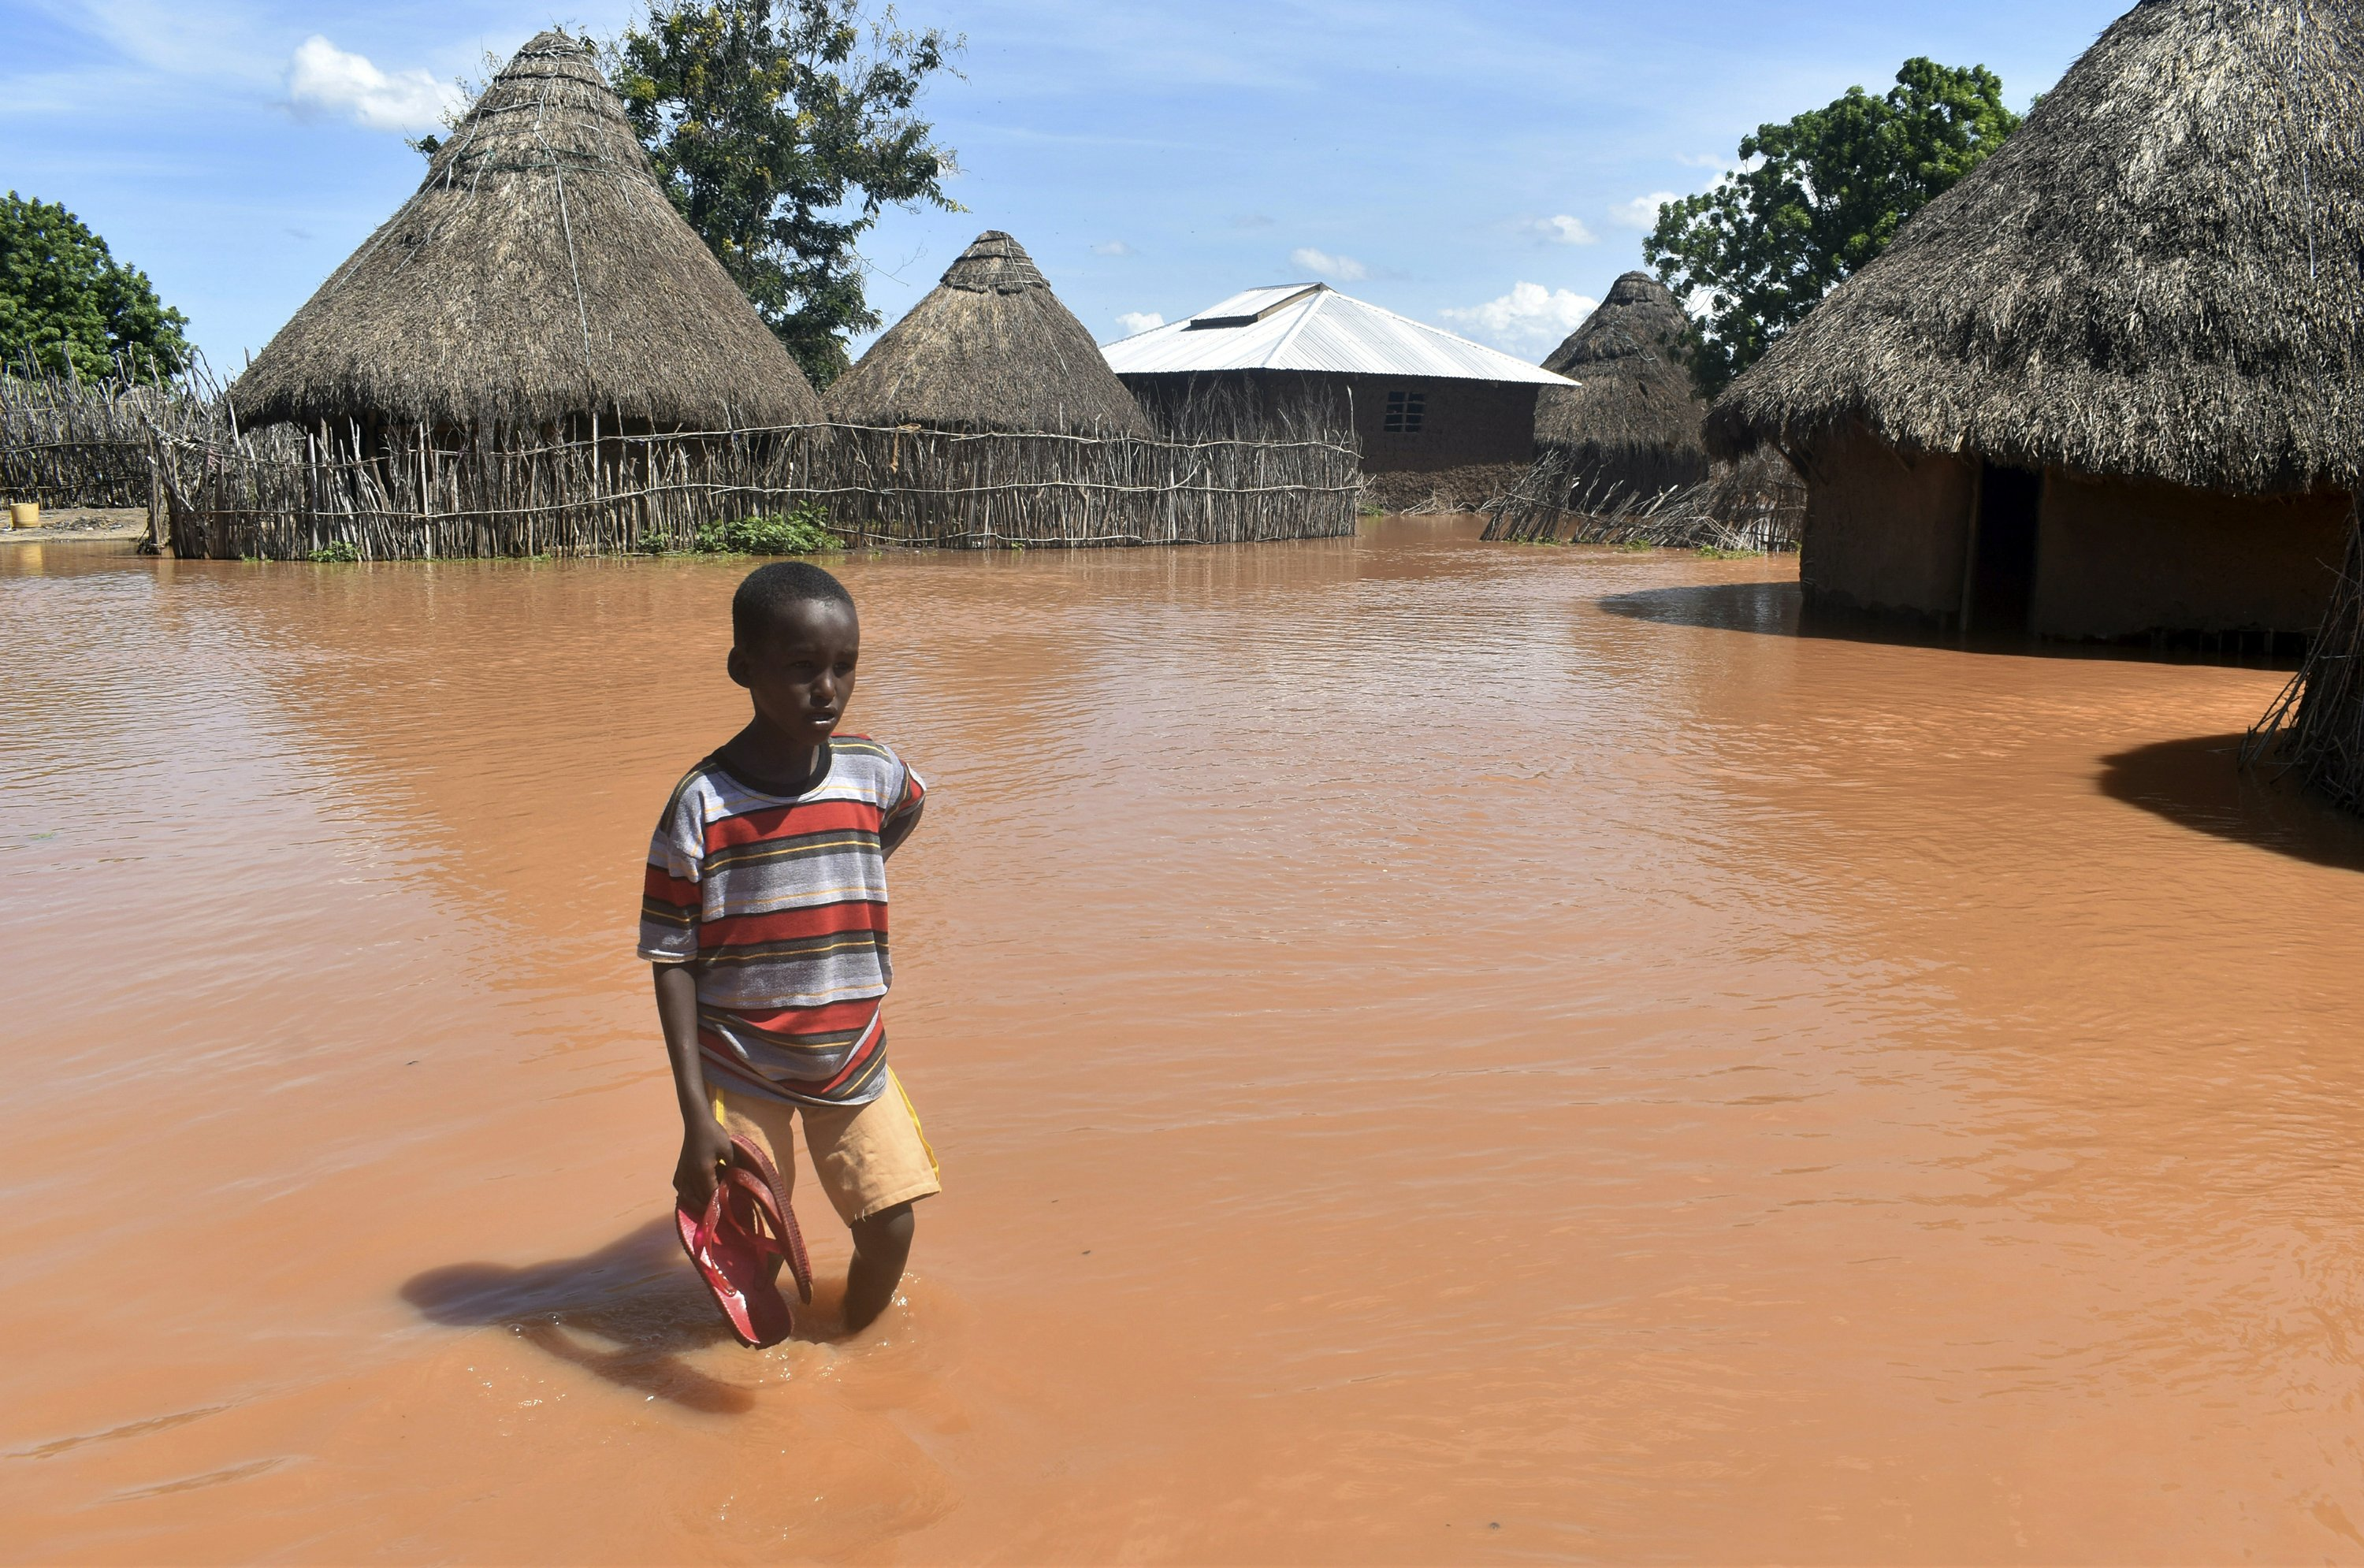 6 dead in Kenya overnight flooding with 11 others missing